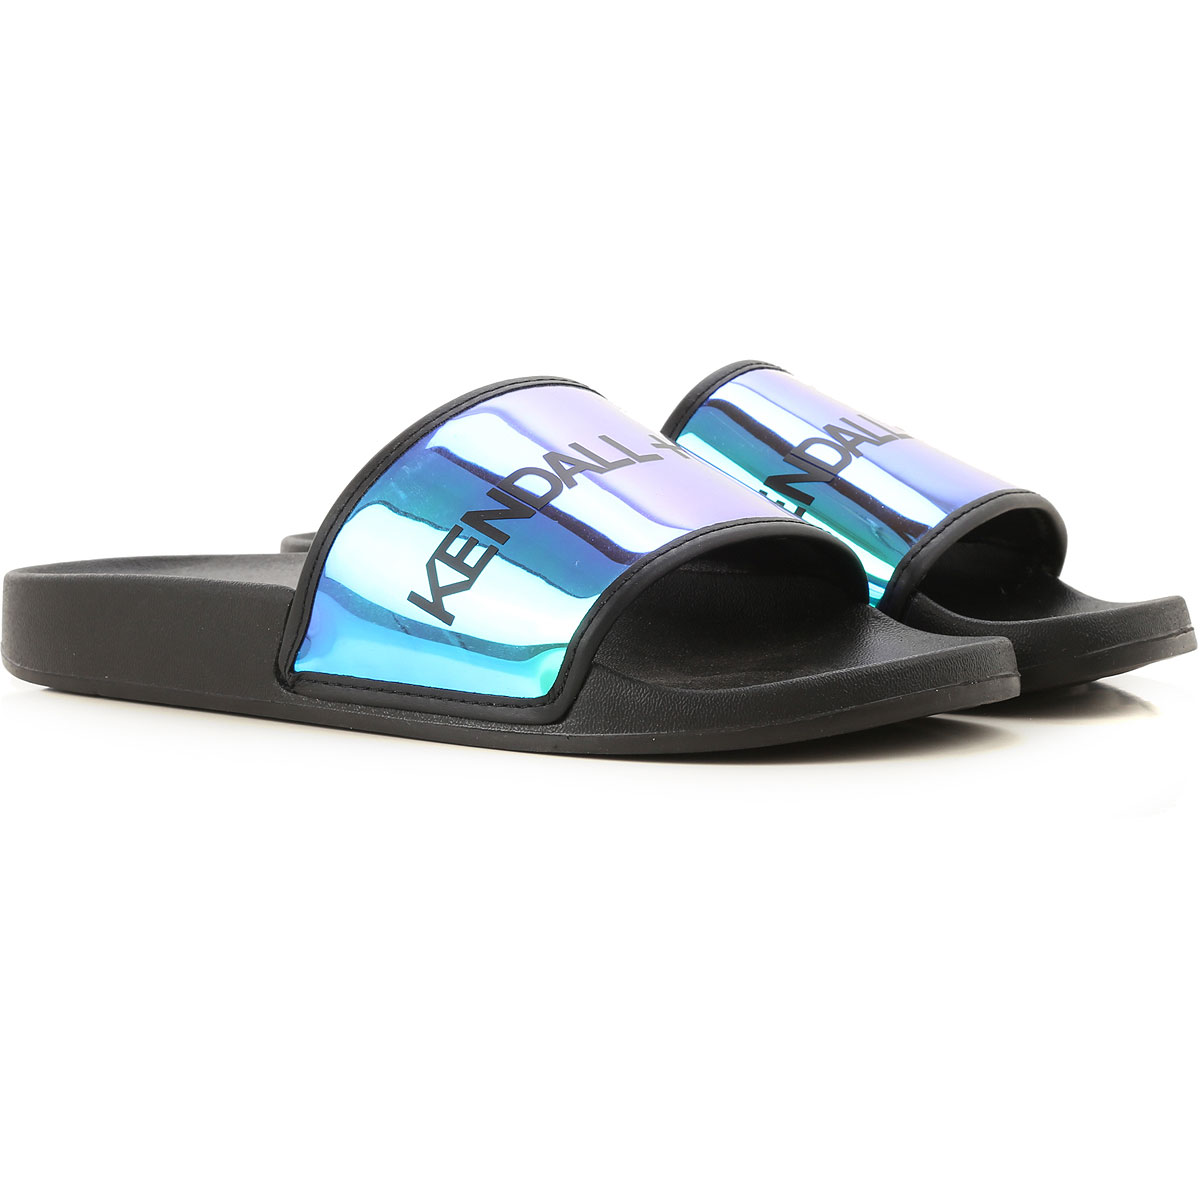 Kendall Kylie Sandals for Women On Sale in Outlet, Black, Rubber, 2019, 11 5 6.5